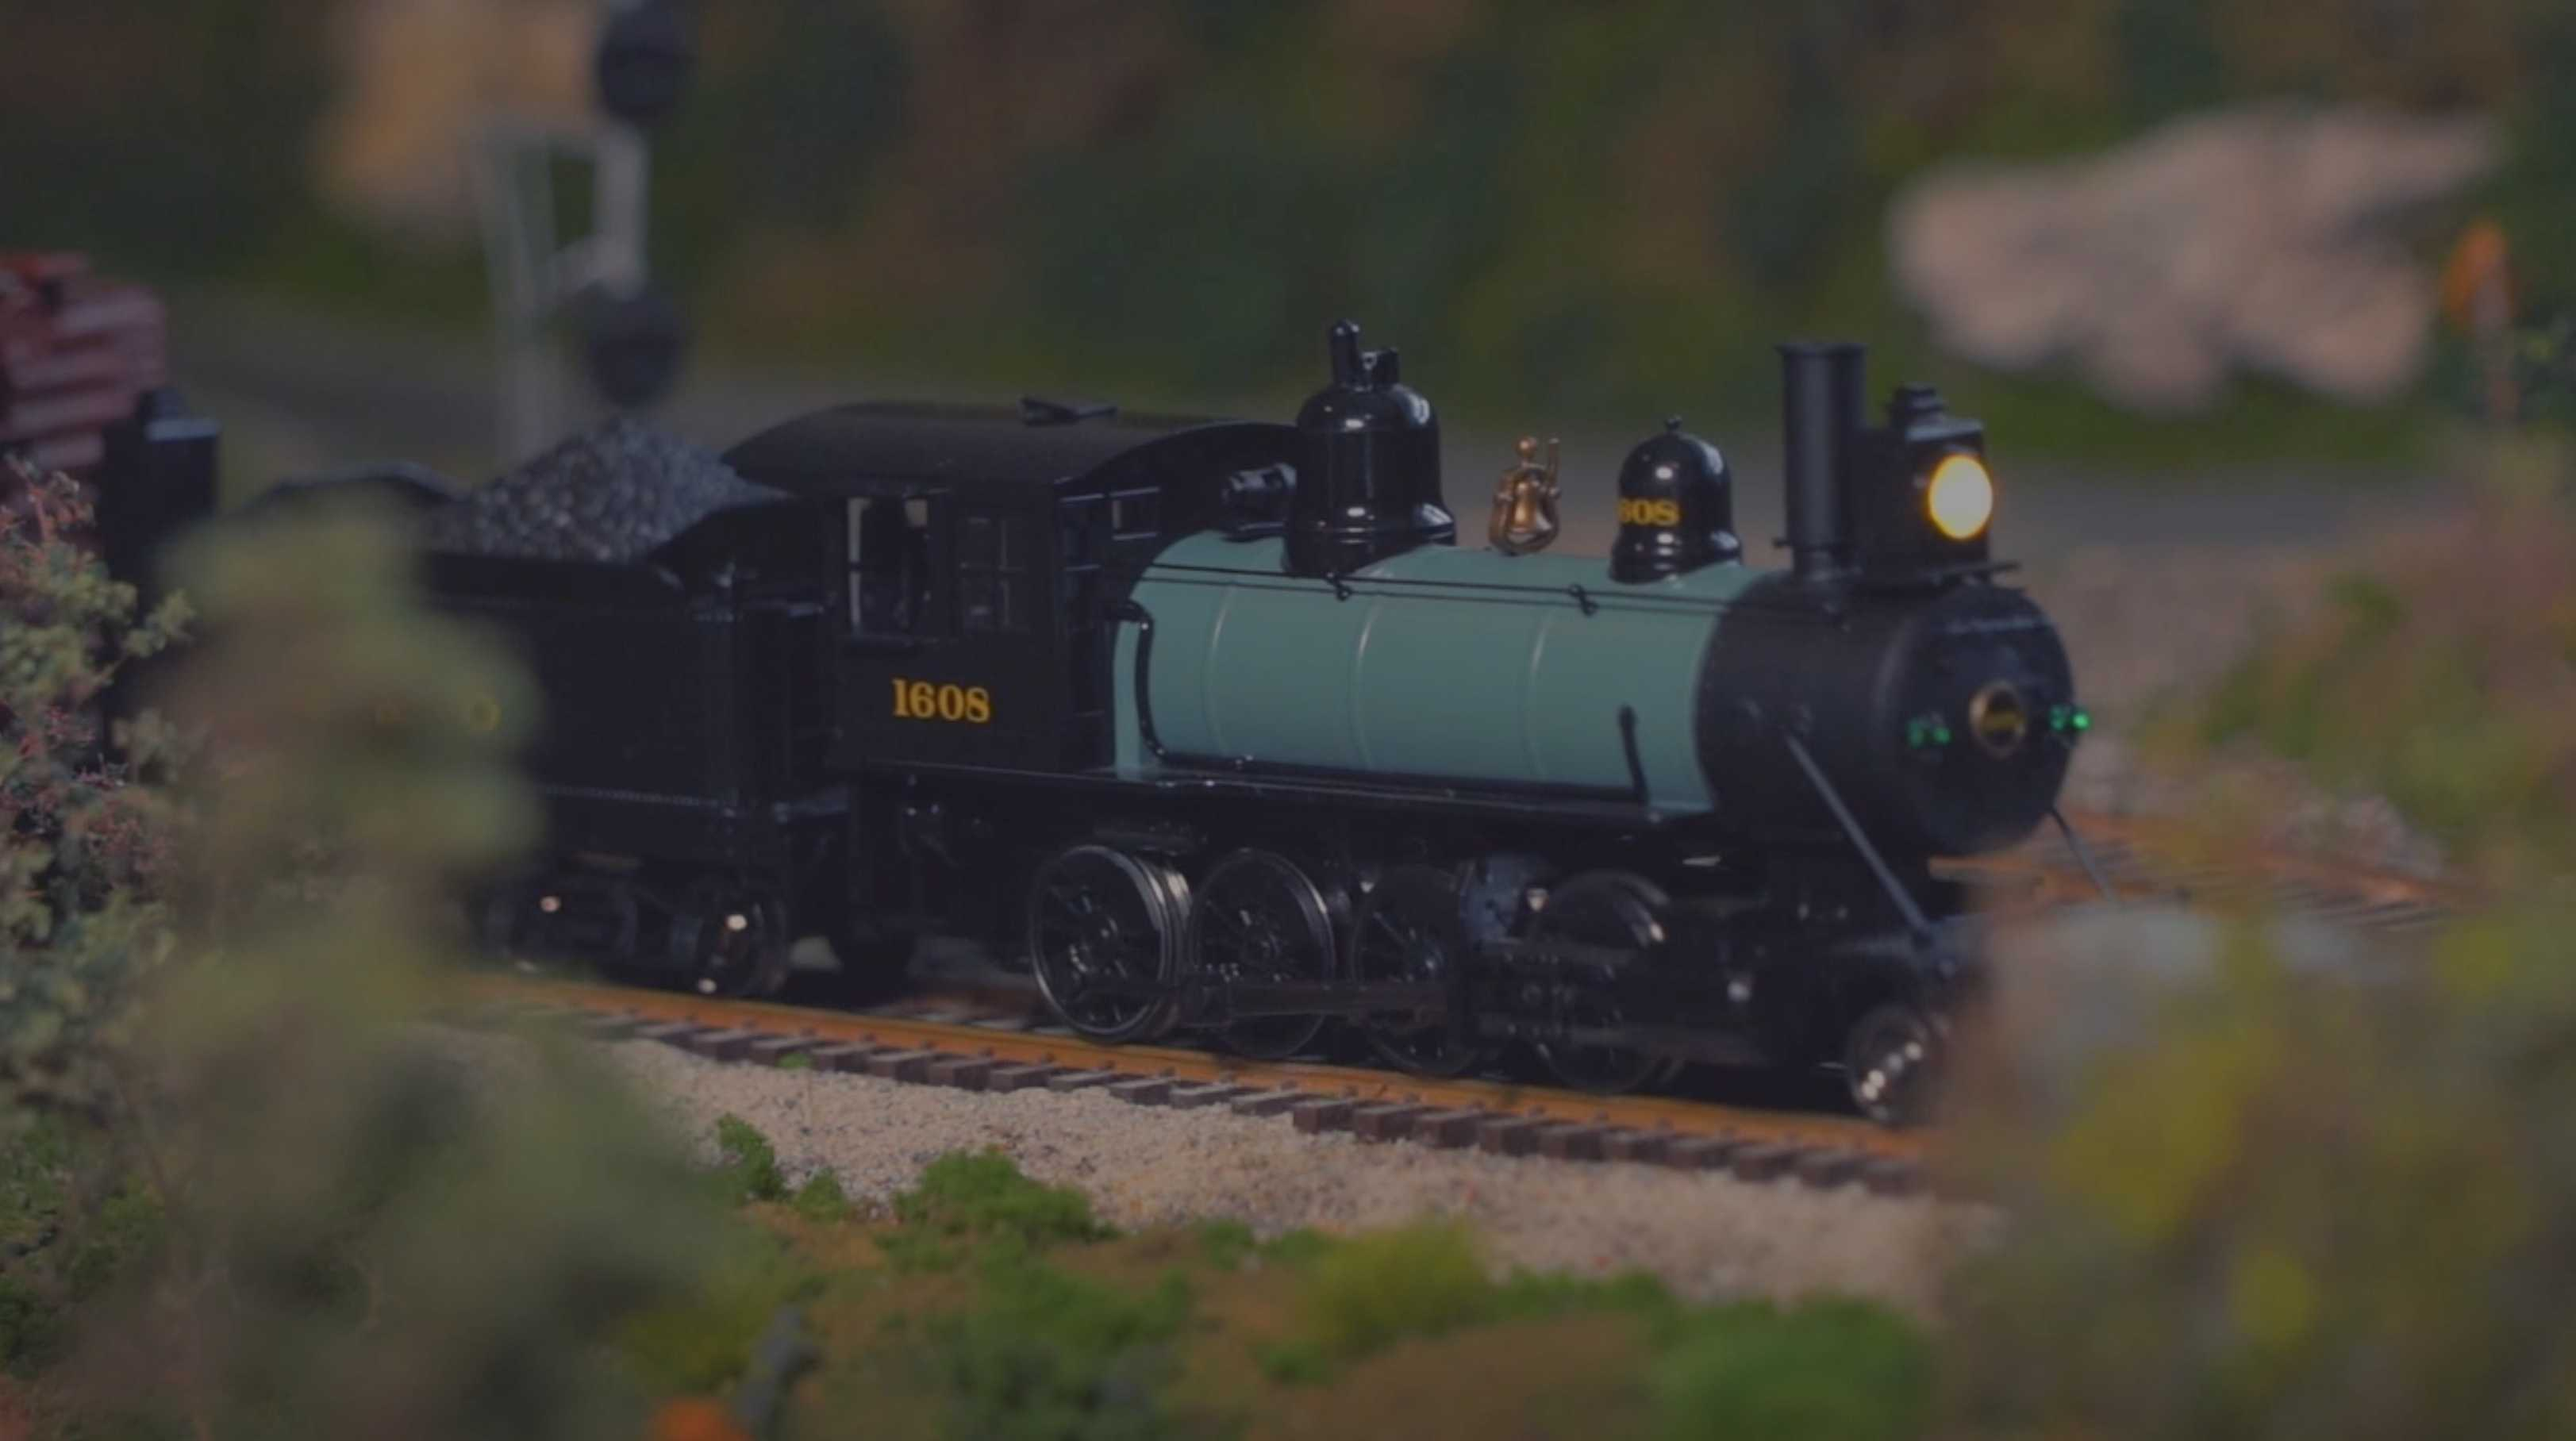 The Athearn HO Scale 2-8-0 with DCC & Sound